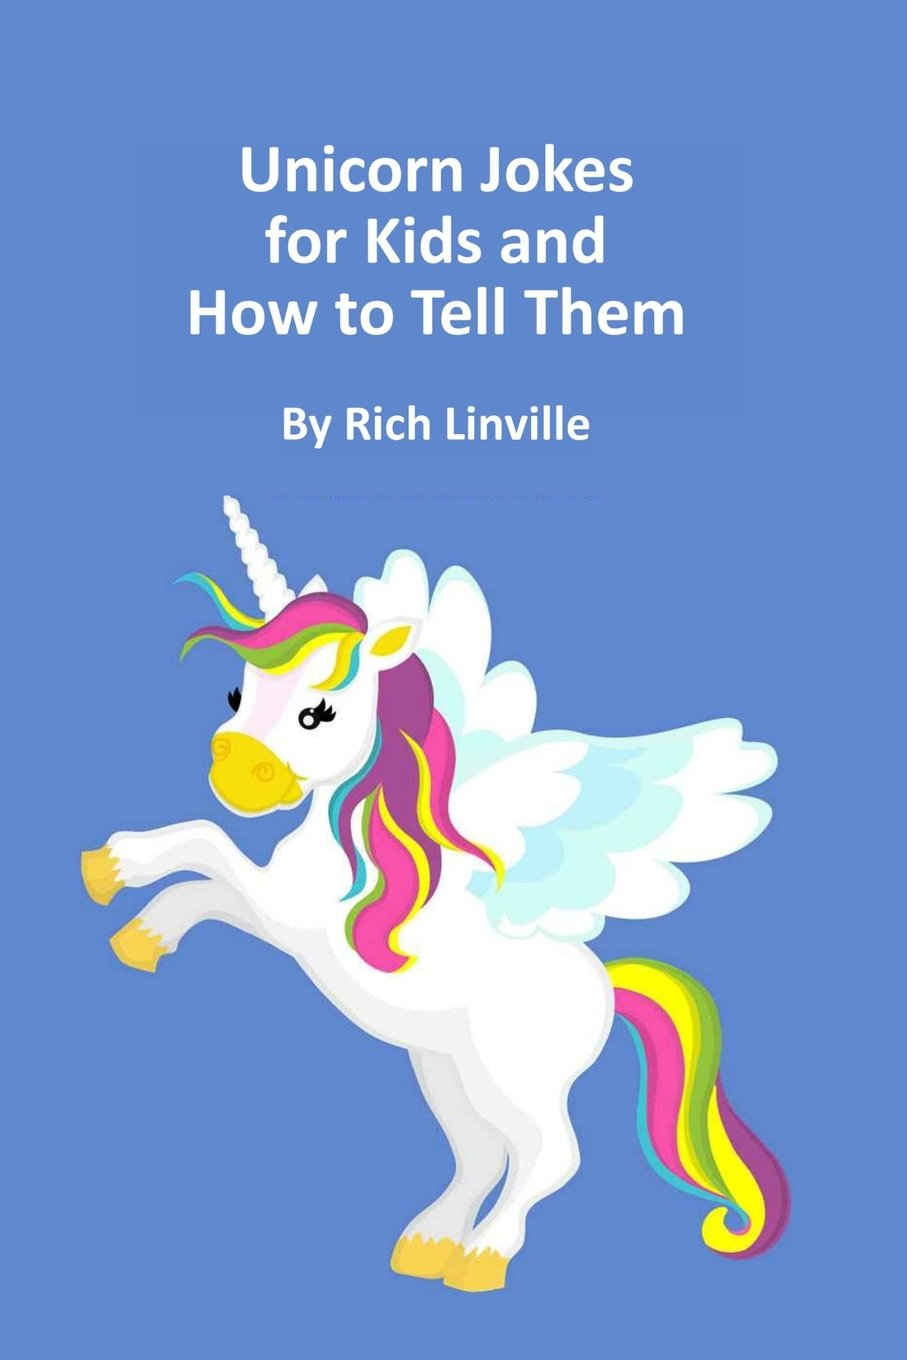 Unicorn Jokes for Kids and How to Tell Them pdf